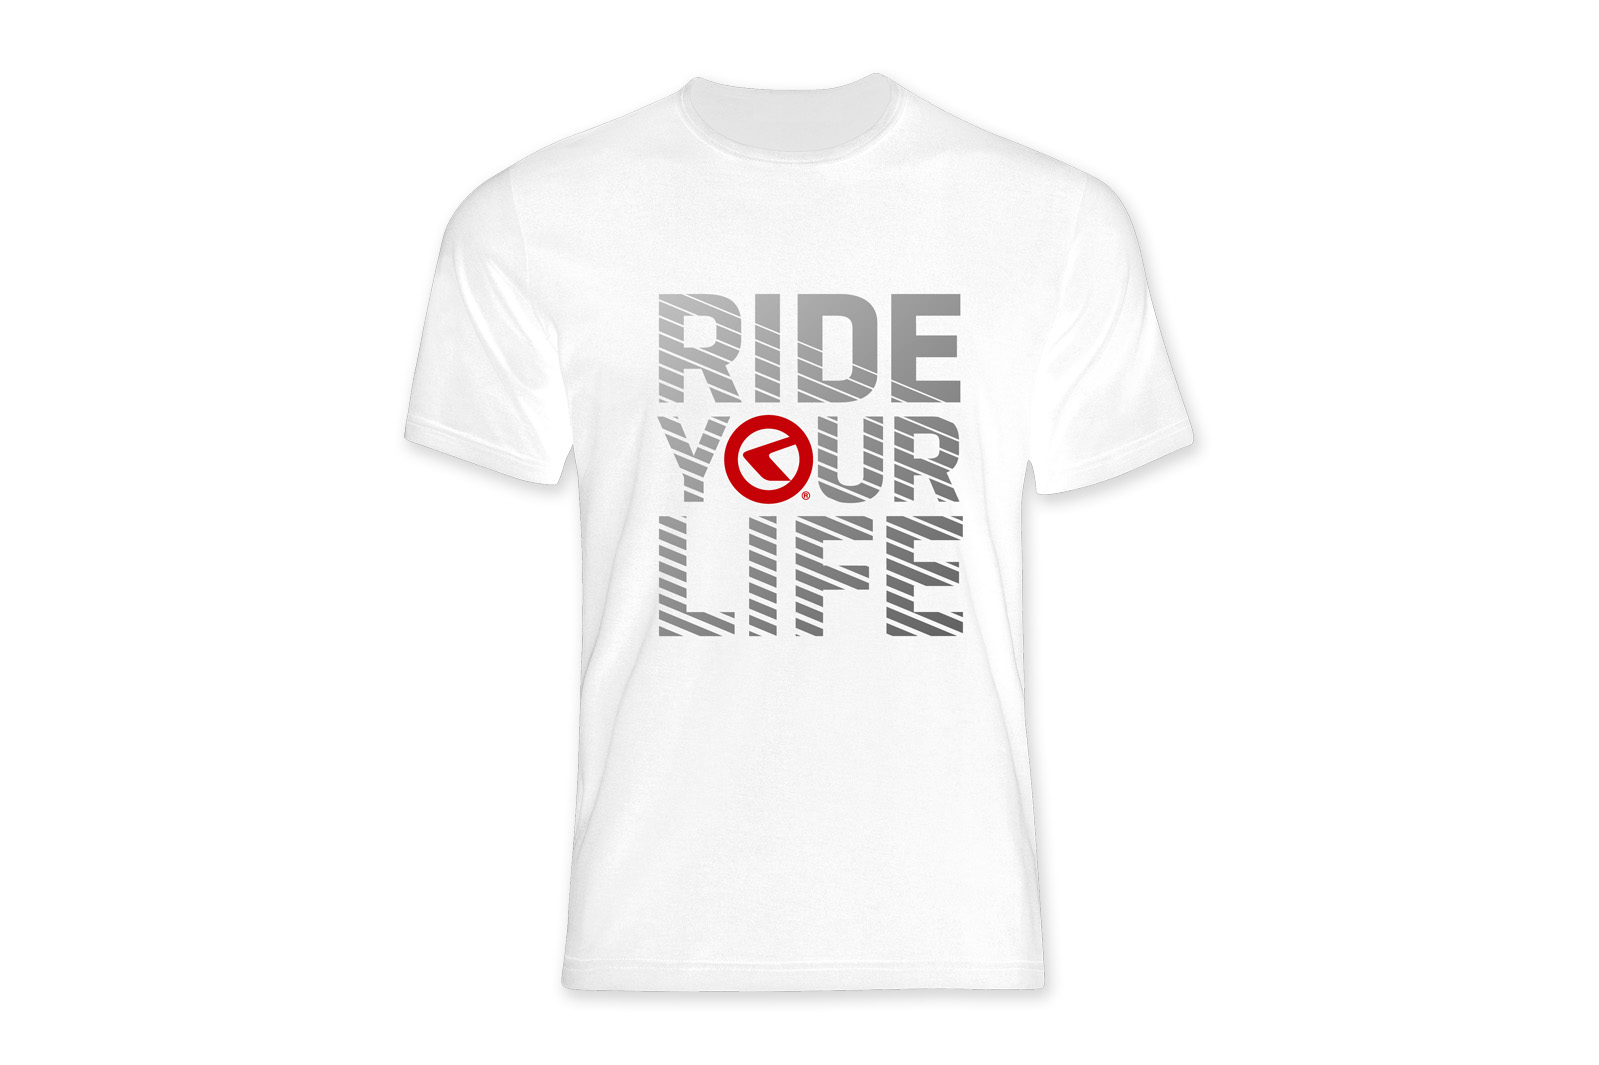 T-Shirt KELLYS RIDE YOUR LIFE kurzarm white - S - Fahrradhaus Haske